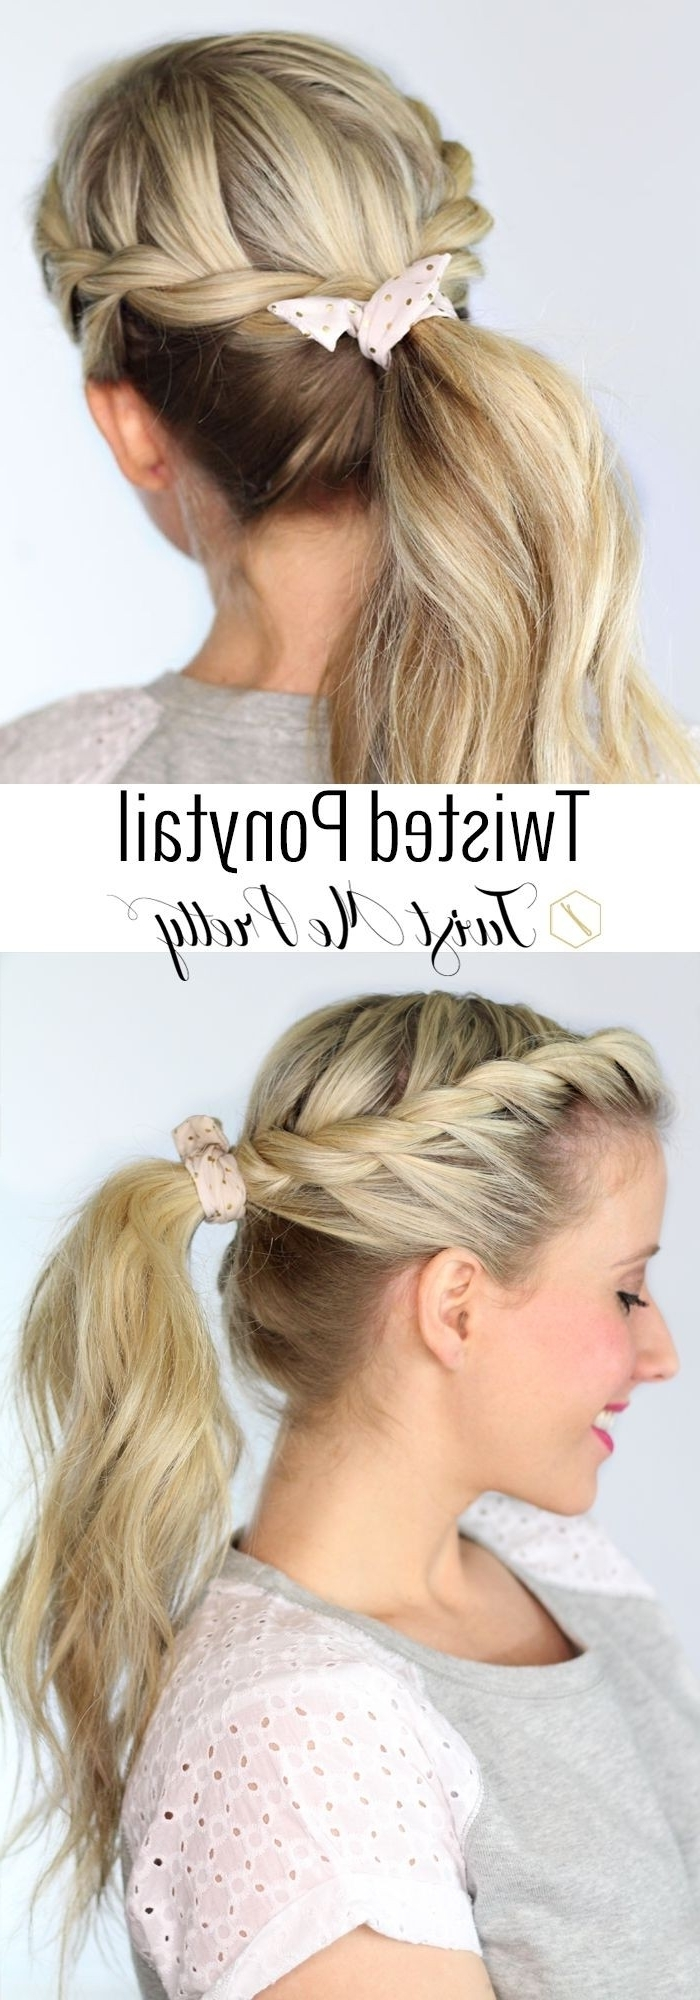 10 Cute Ponytail Ideas: Summer And Fall Hairstyles For Long Hair In Widely Used Charmingly Soft Ponytail Hairstyles (View 1 of 20)